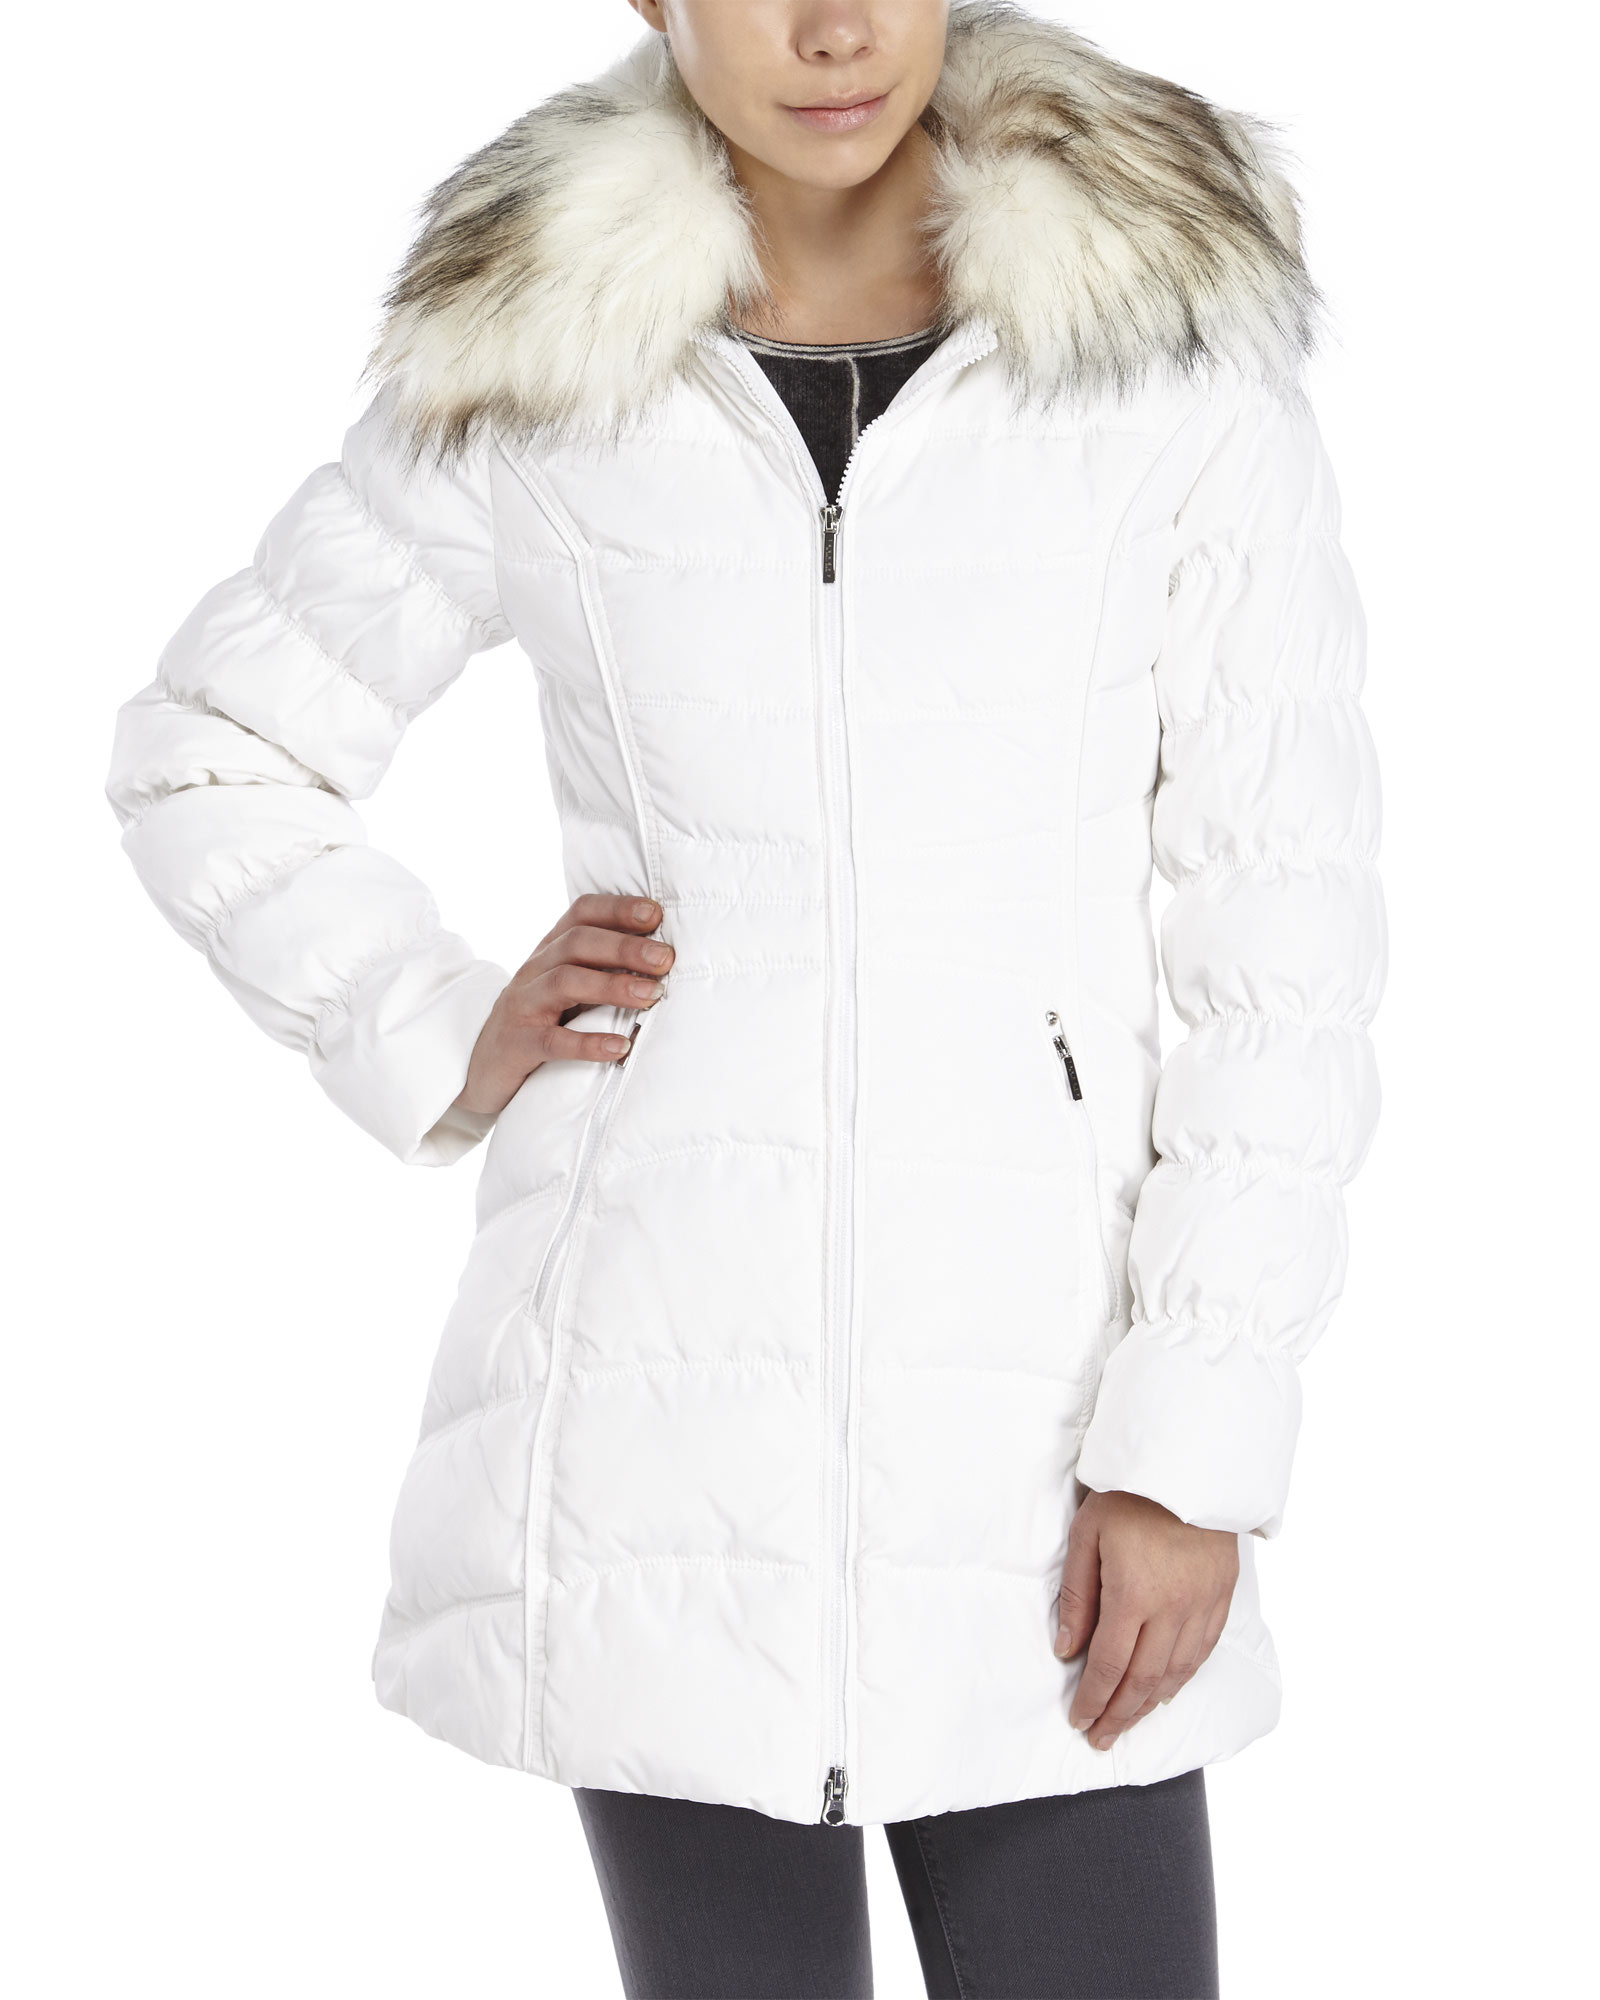 Laundry by shelli segal Hooded Faux Fur Trim Down Coat in White | Lyst